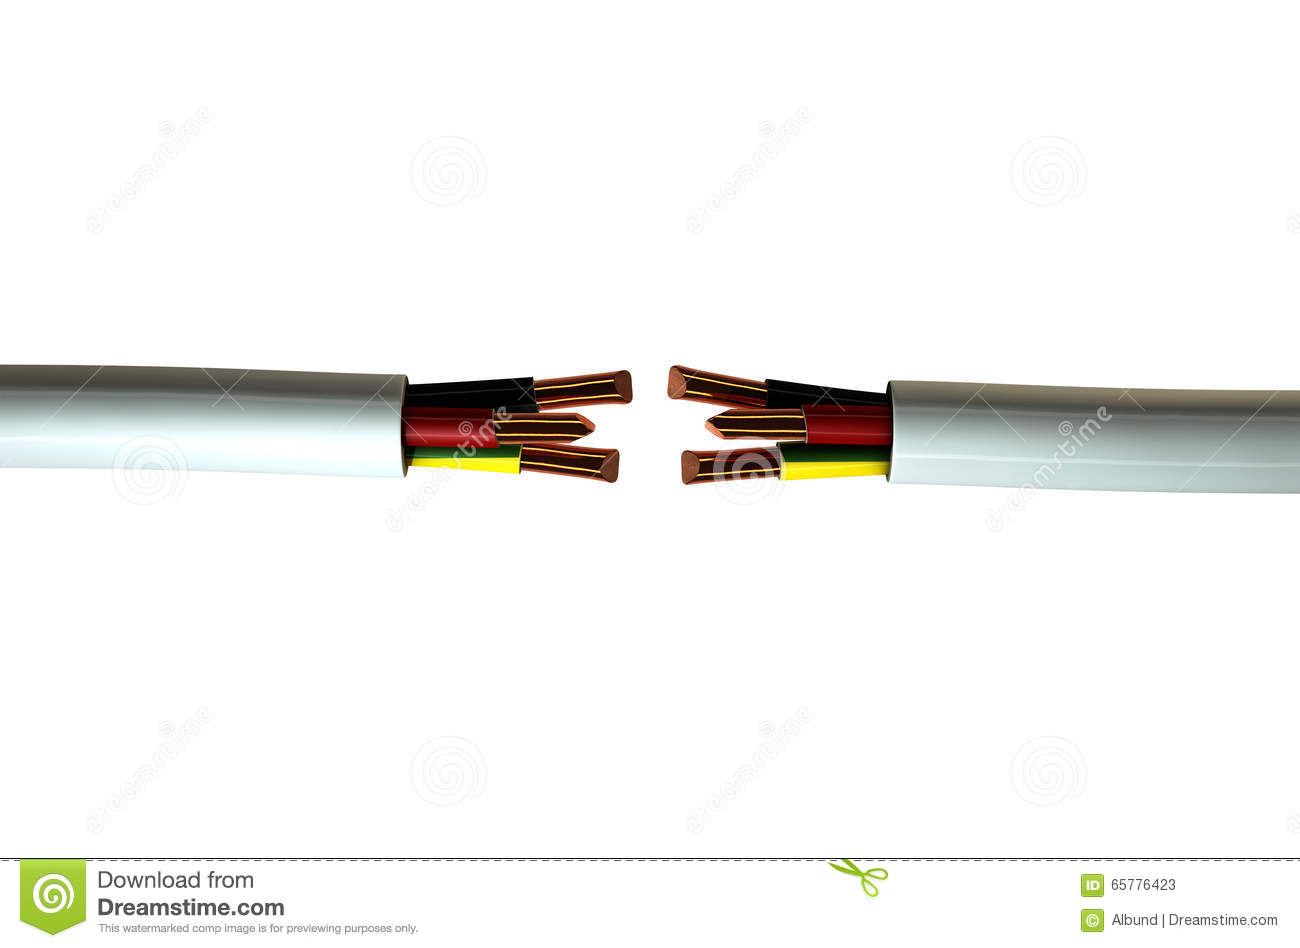 Electrical Cable Cut Stock Image Of Equipment 65776423 Copper Wire Two Opposing Regular Three Core Insulated With The And Exposed On An Isolated White Studio Background